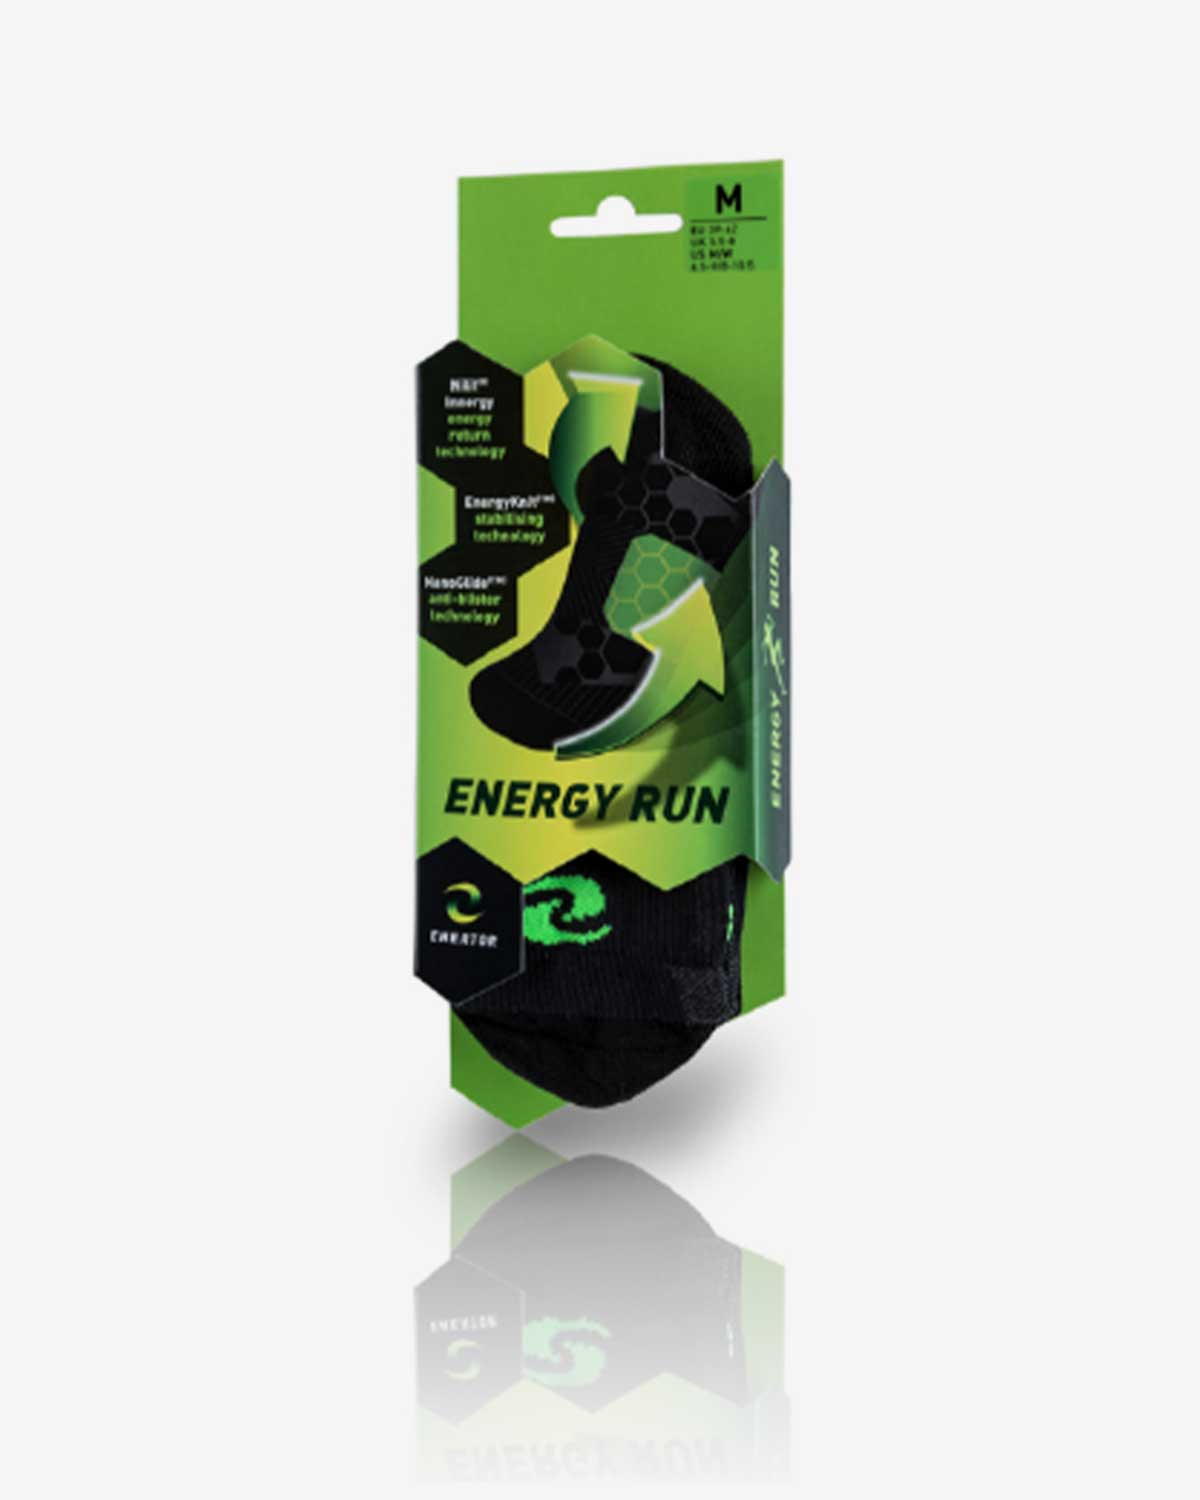 Enertor Specialist Running Socks Packaging